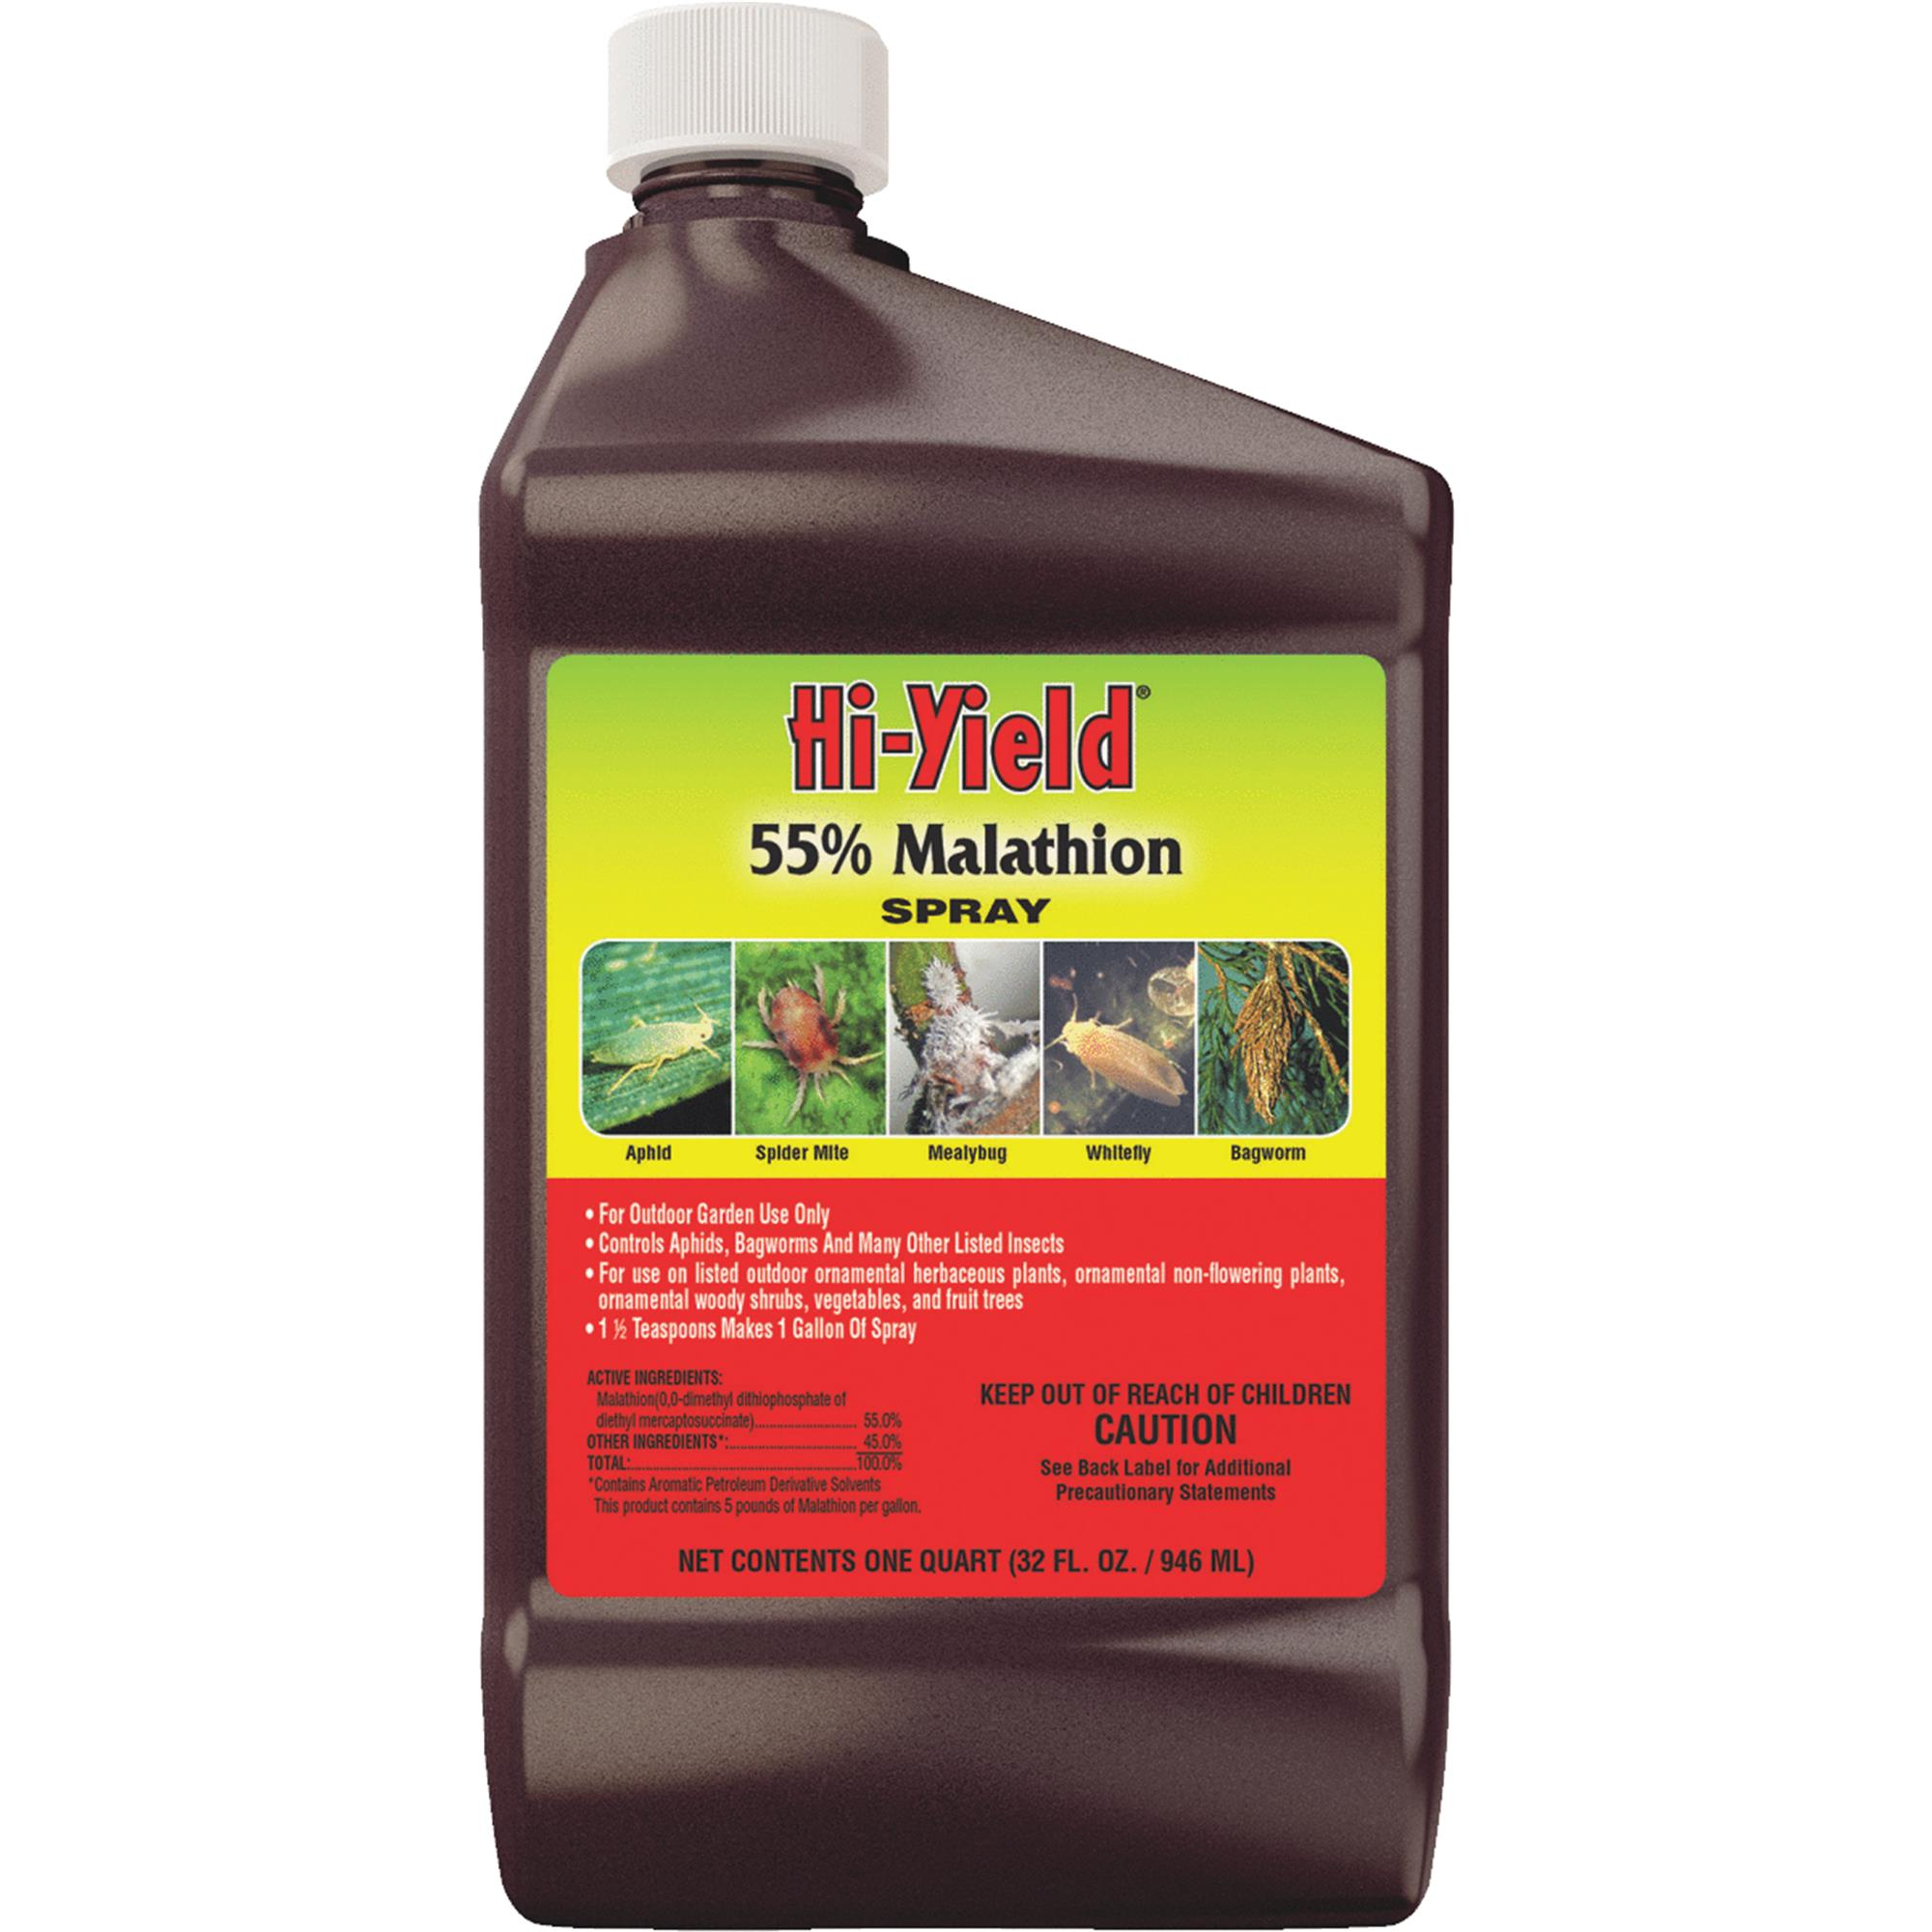 Hi-Yield Malathion Insect Killer